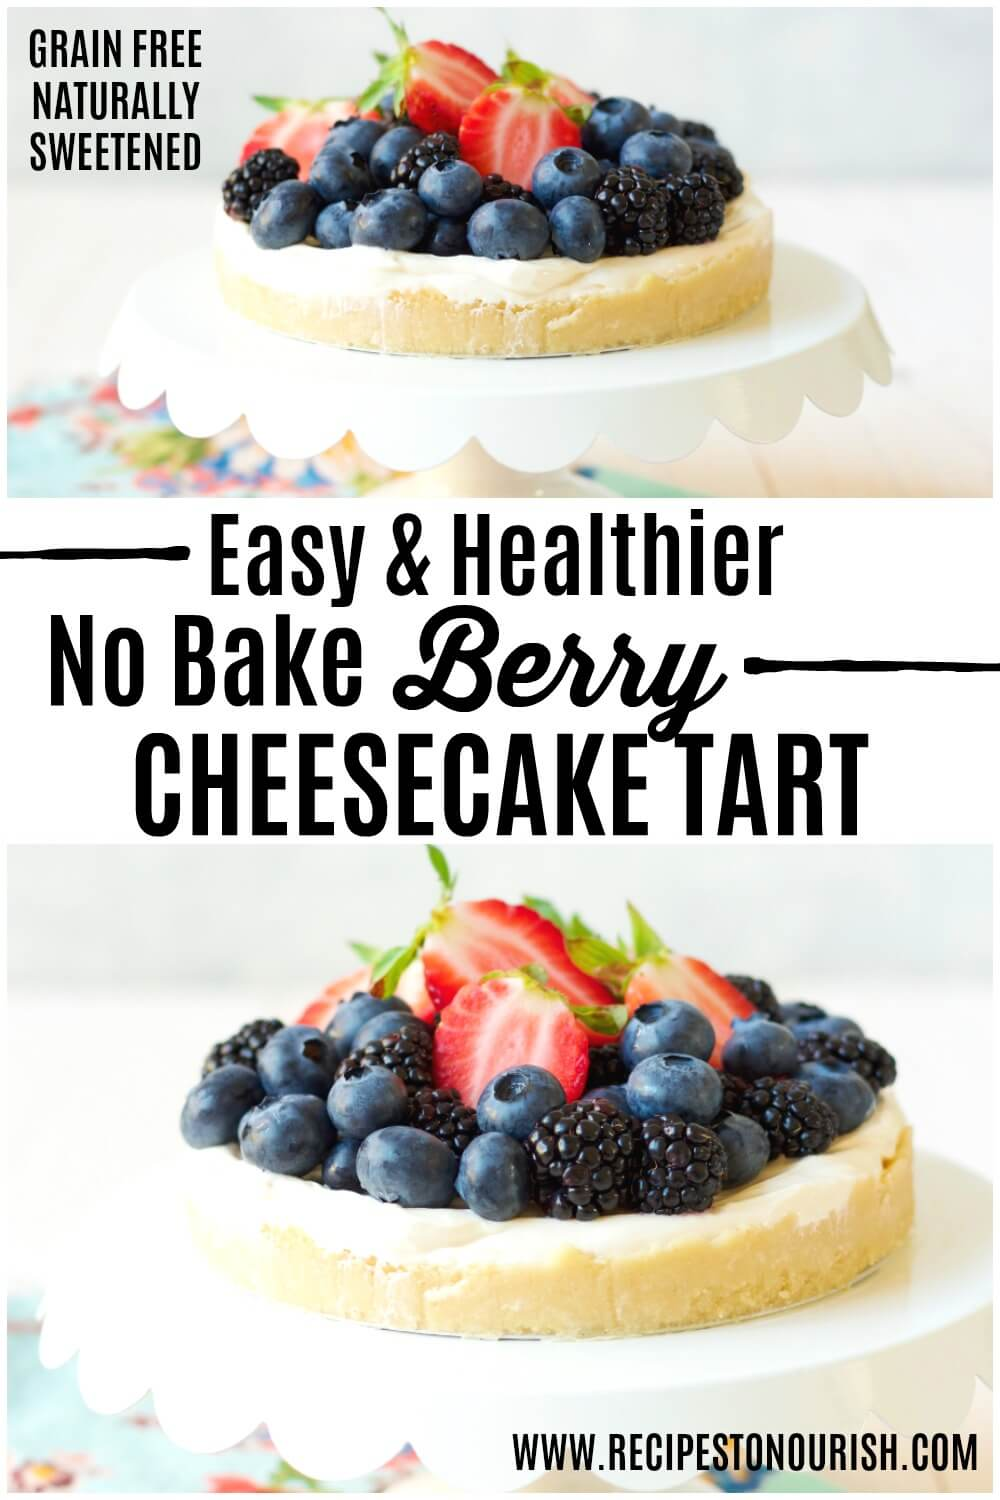 Cheesecake tart topped with fresh blueberries, strawberries and blackberries sitting on a cake stand.